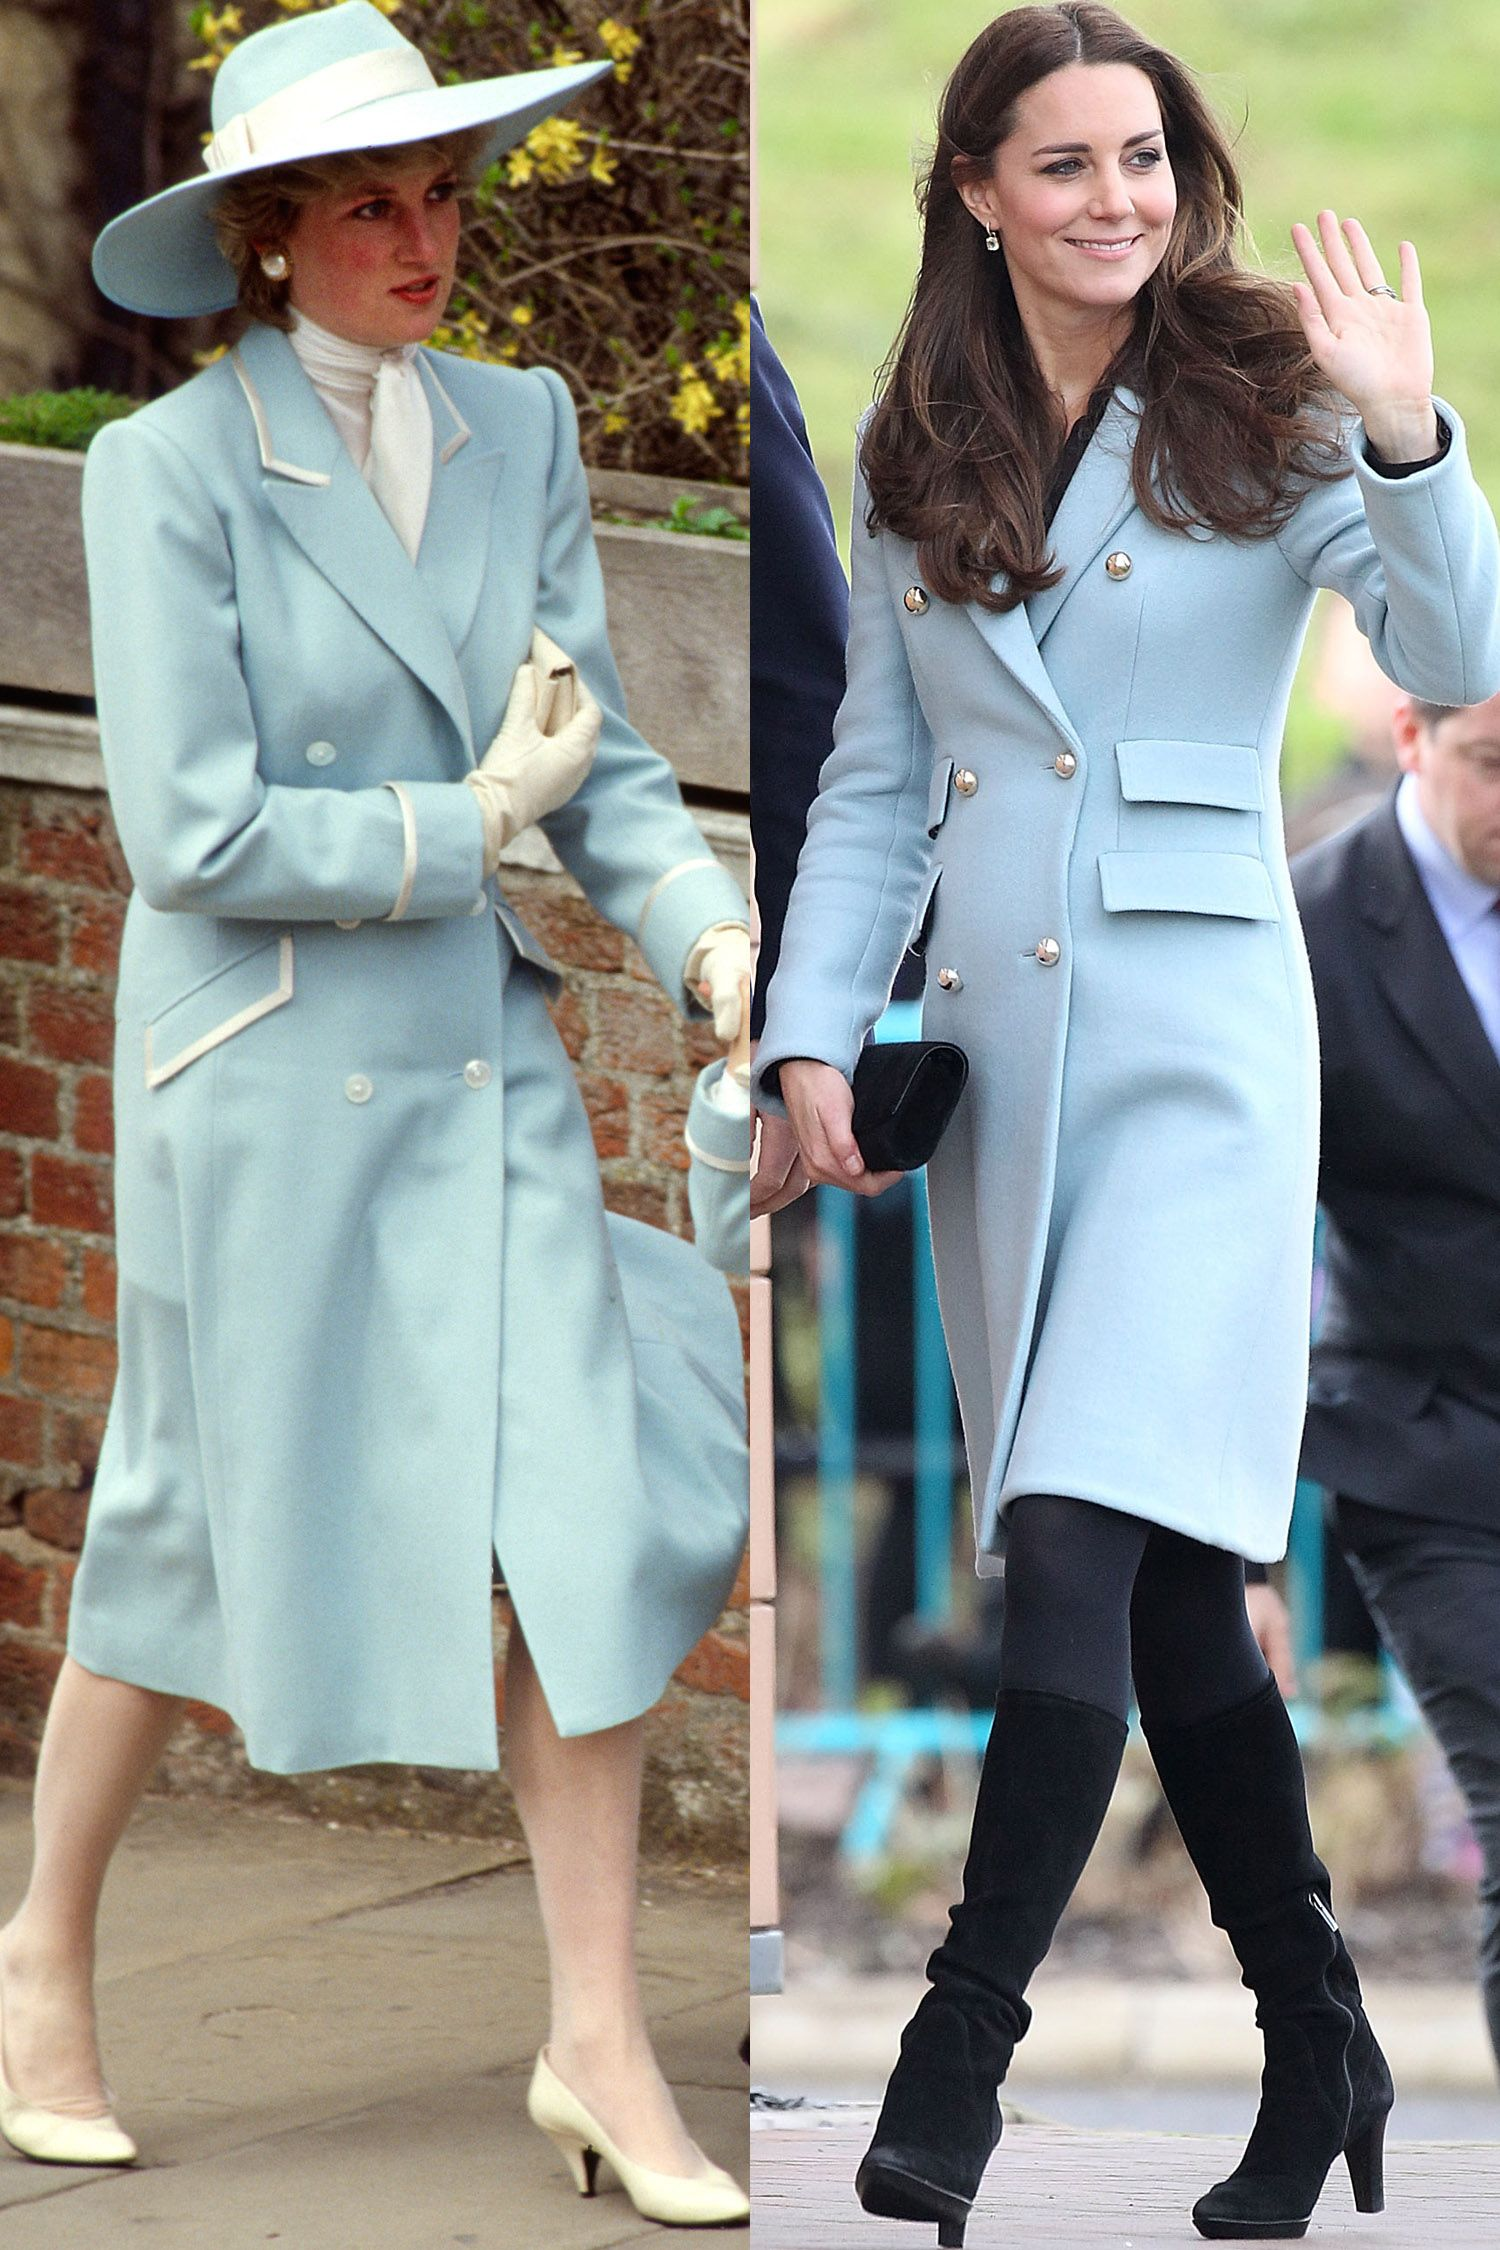 Princess Diana And Kate Middleton Have The Same Style S Matching Outfits